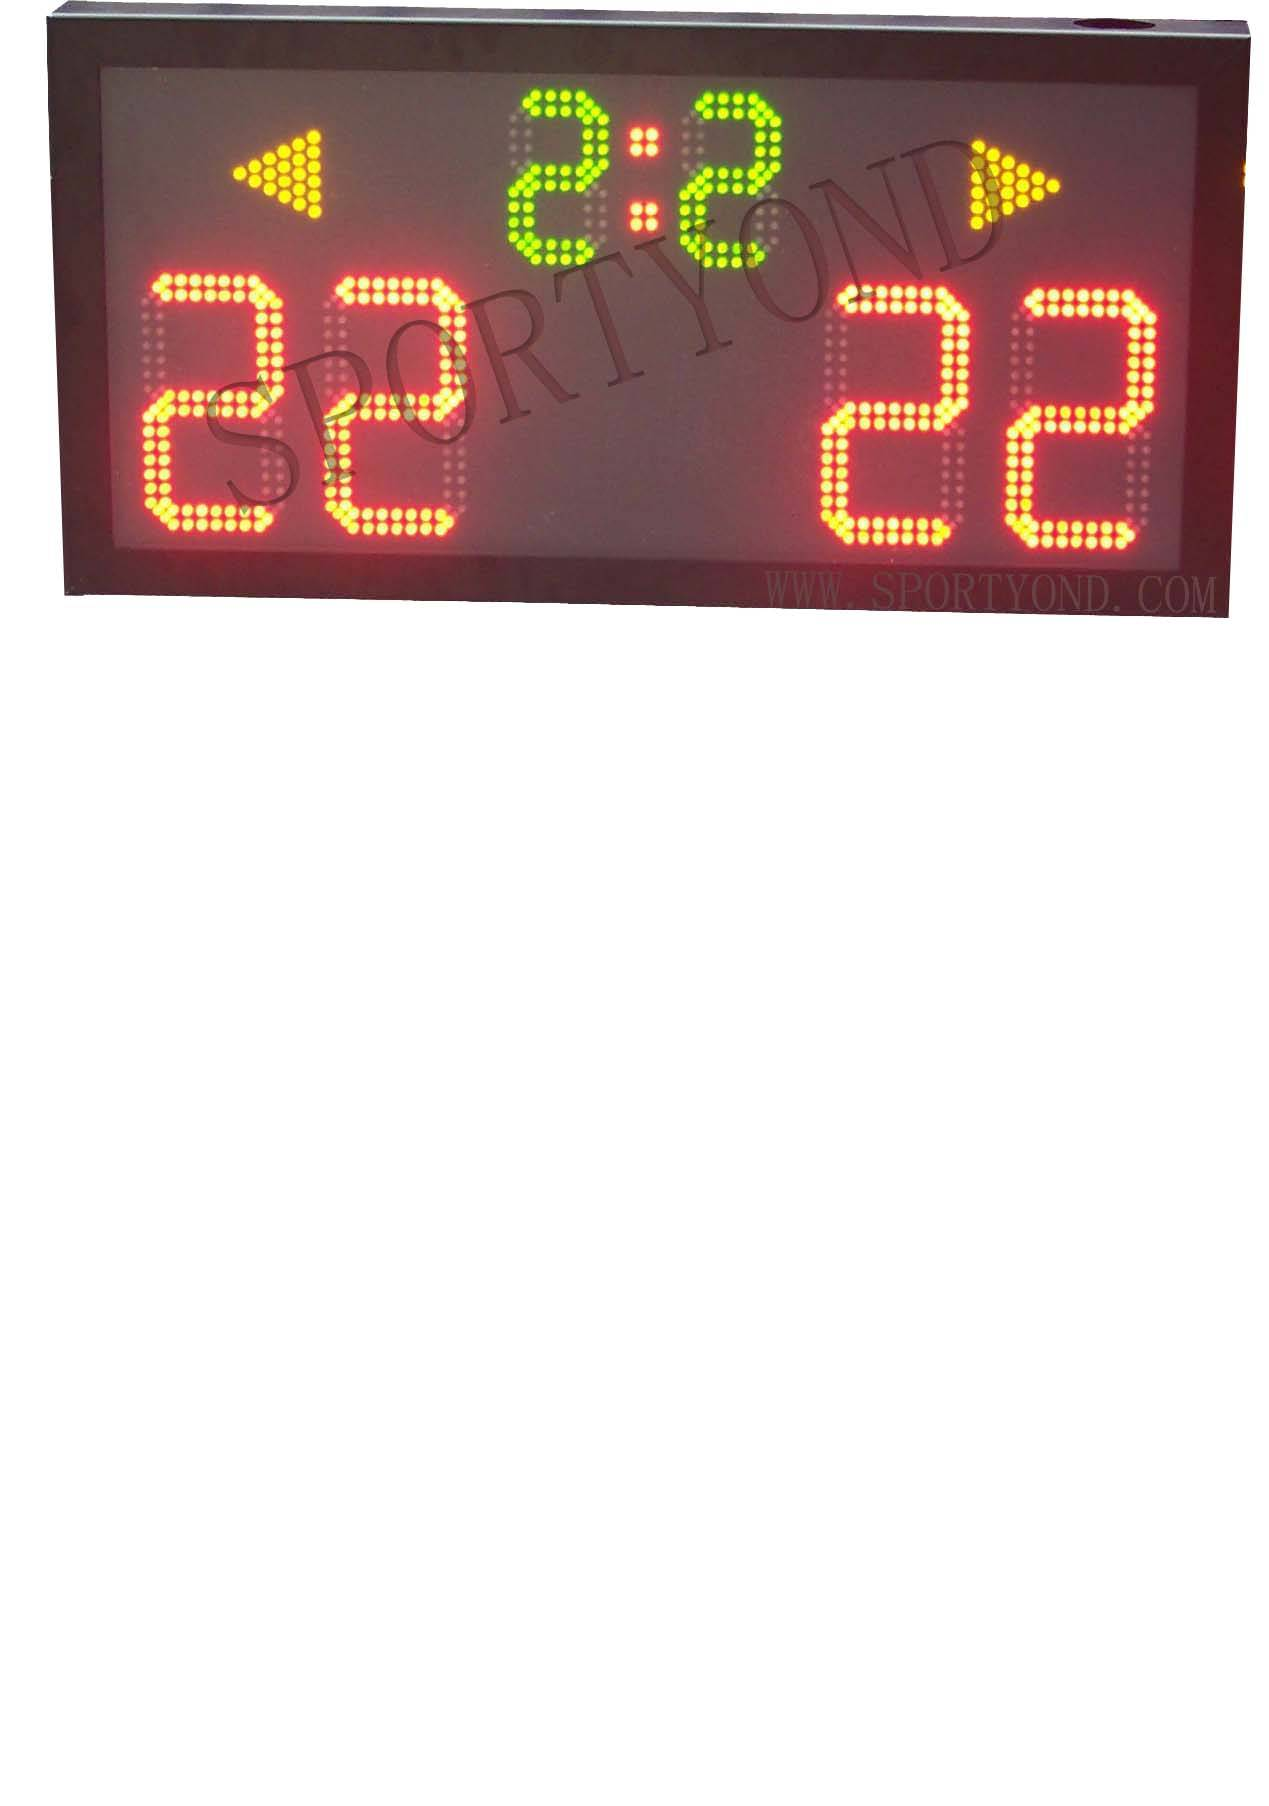 Volleyball electronic scoreboard